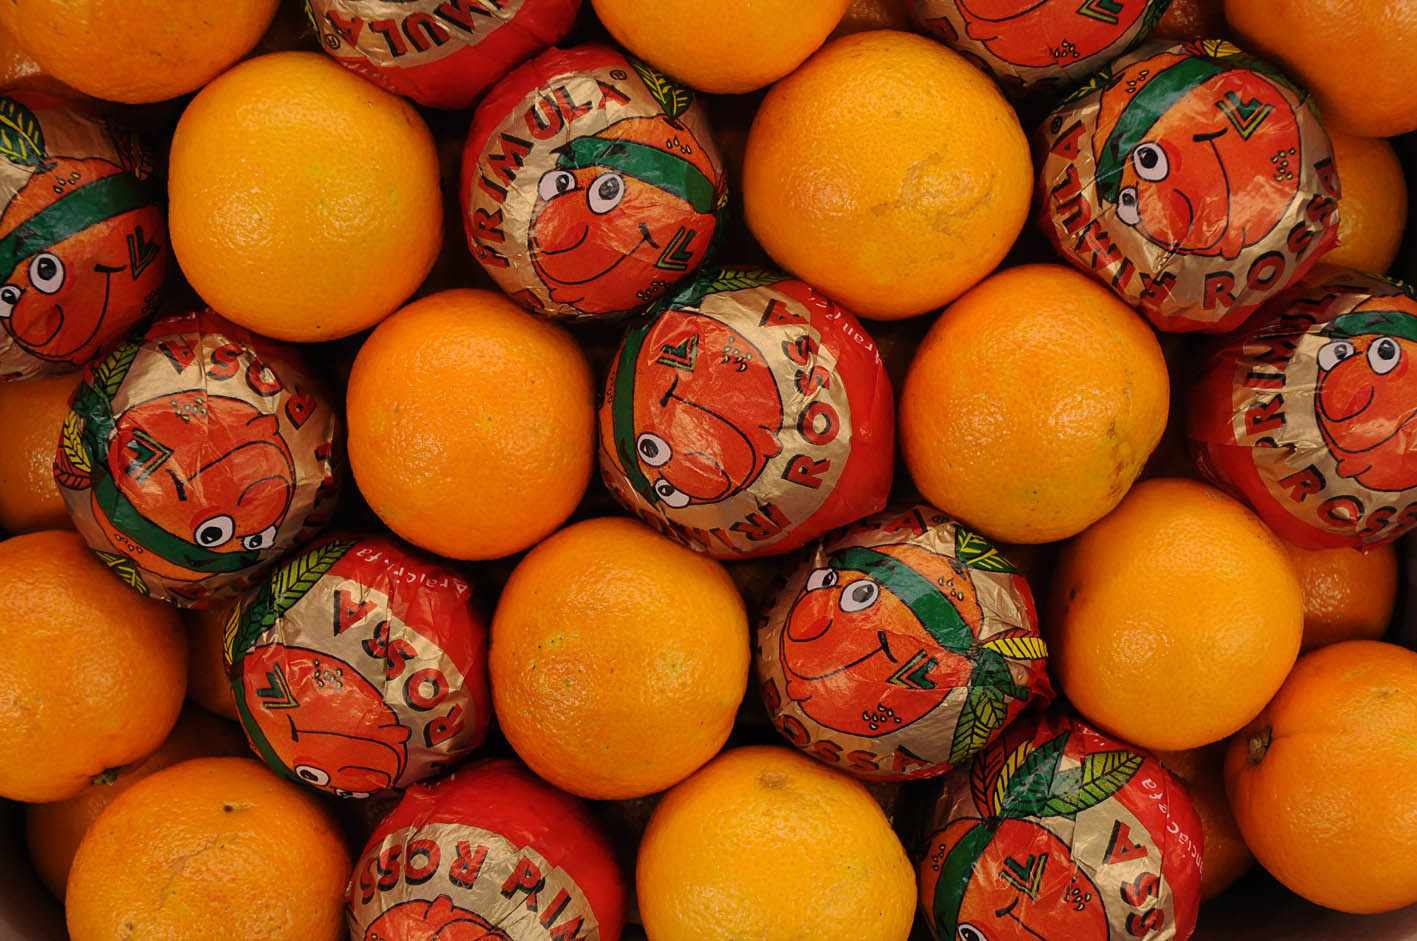 blood-oranges.jpg?mtime=20170922144726#asset:11557